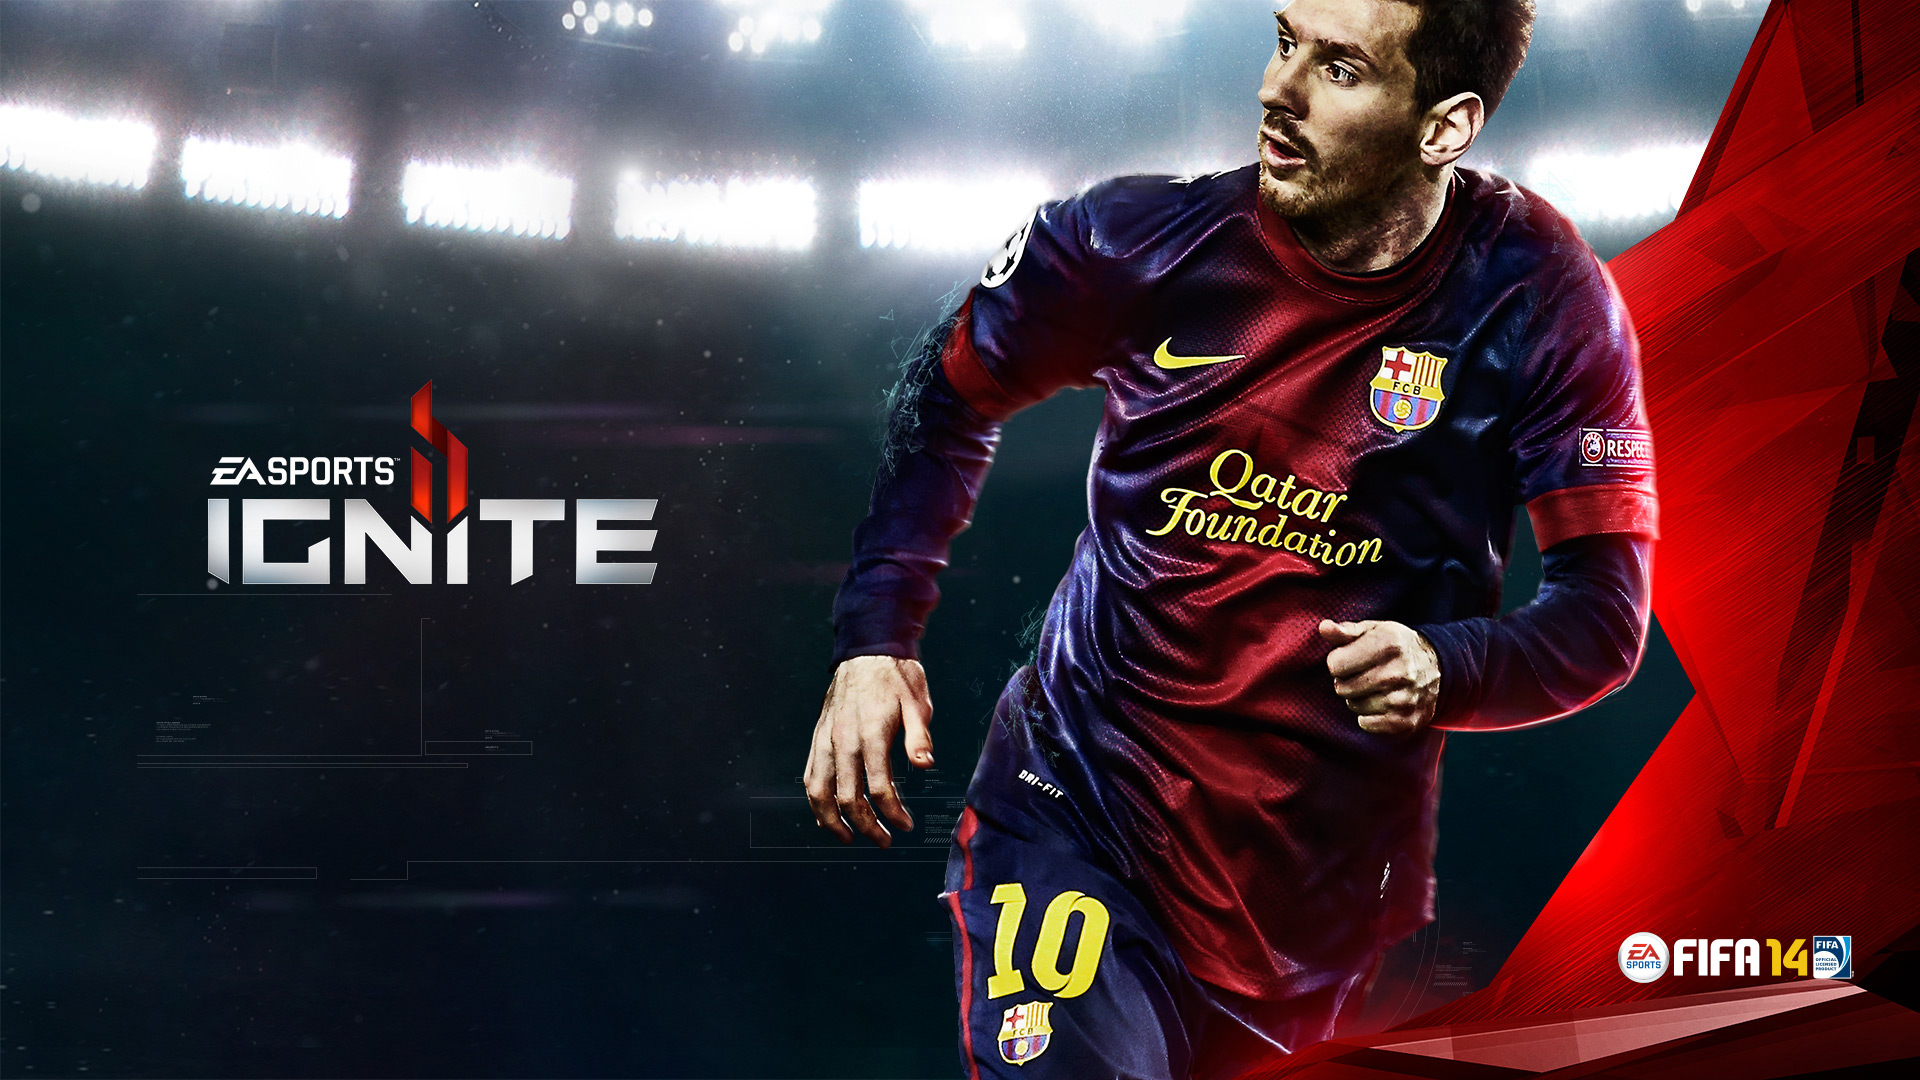 free lionel messi 1920×1080 backgrounds download - page 2 of 3